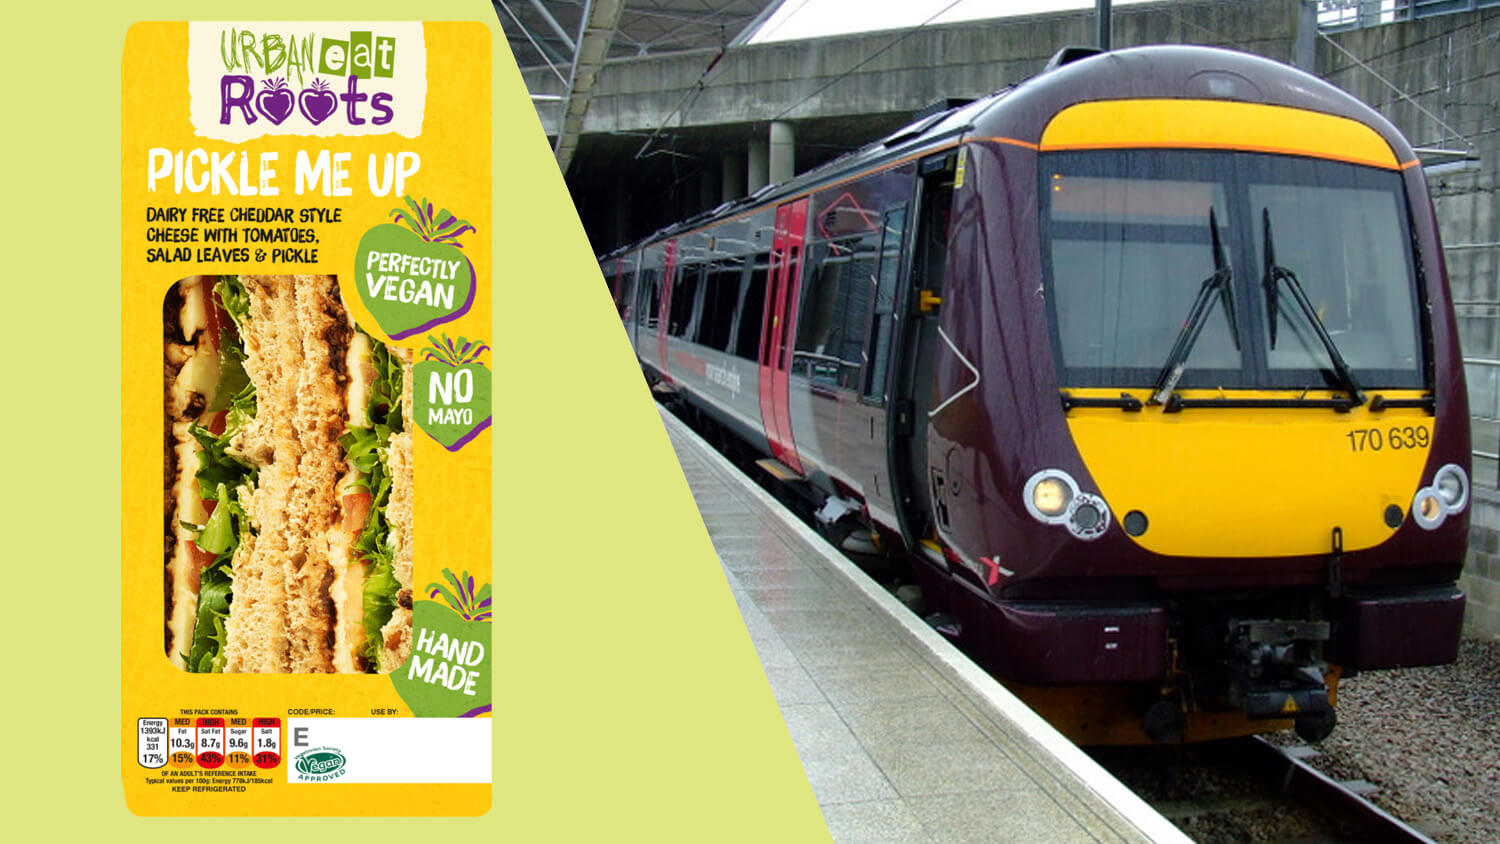 Major UK Train Company CrossCountry Trains Launches Vegan Sandwiches